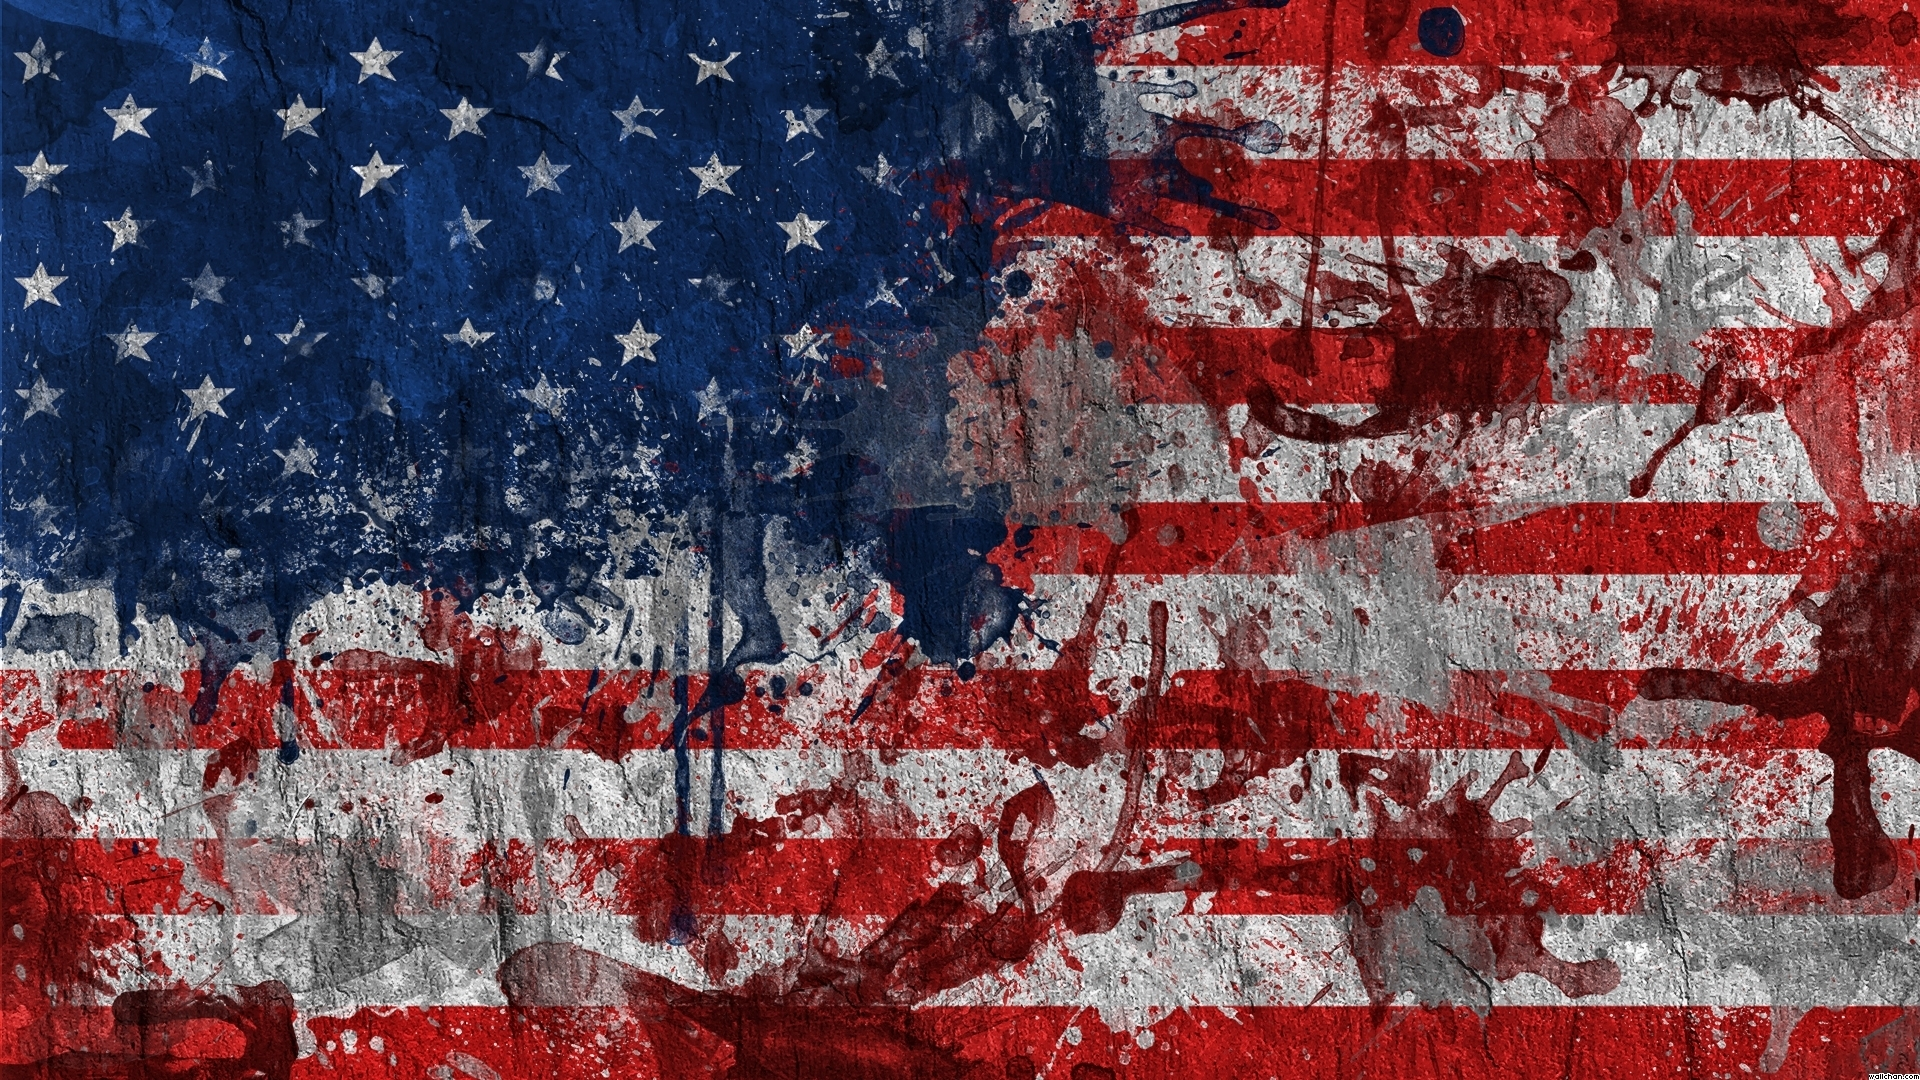 tattered american flag background - google search | starzz-n*strypez